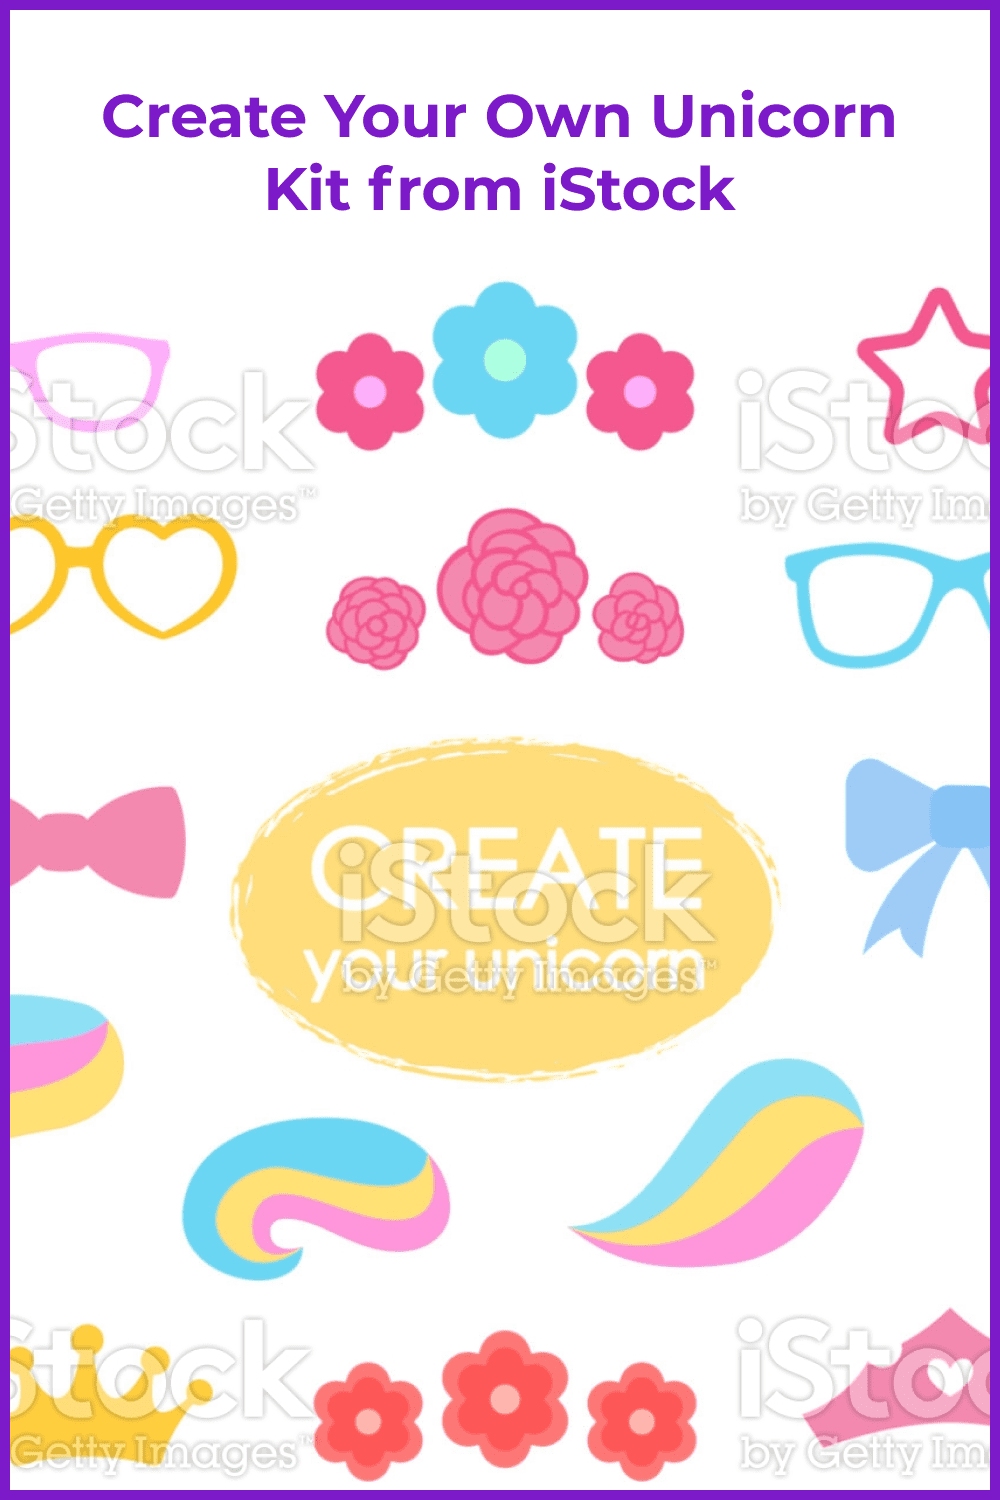 All attributes for creating a beautiful unicorn.